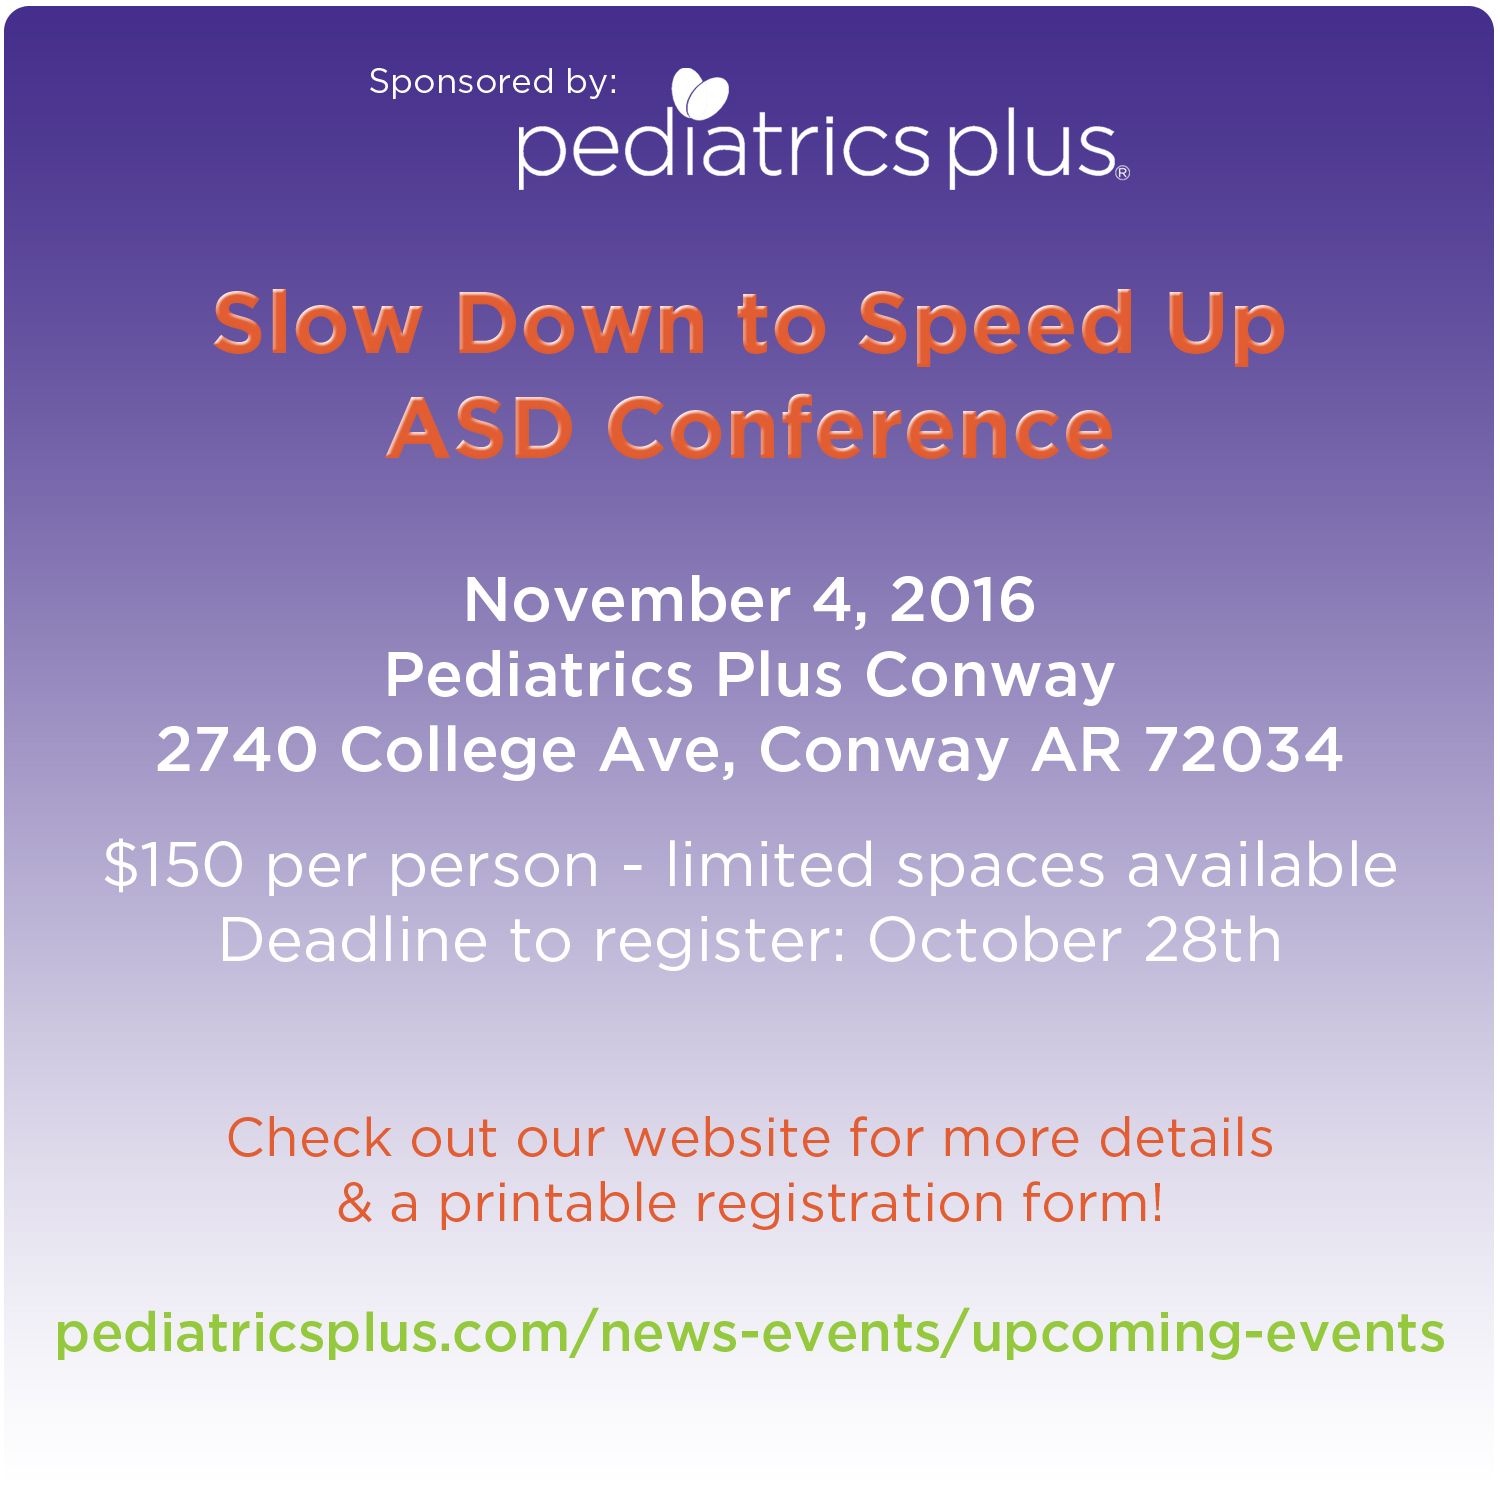 Slow Down to Speed Up: ASD Conference